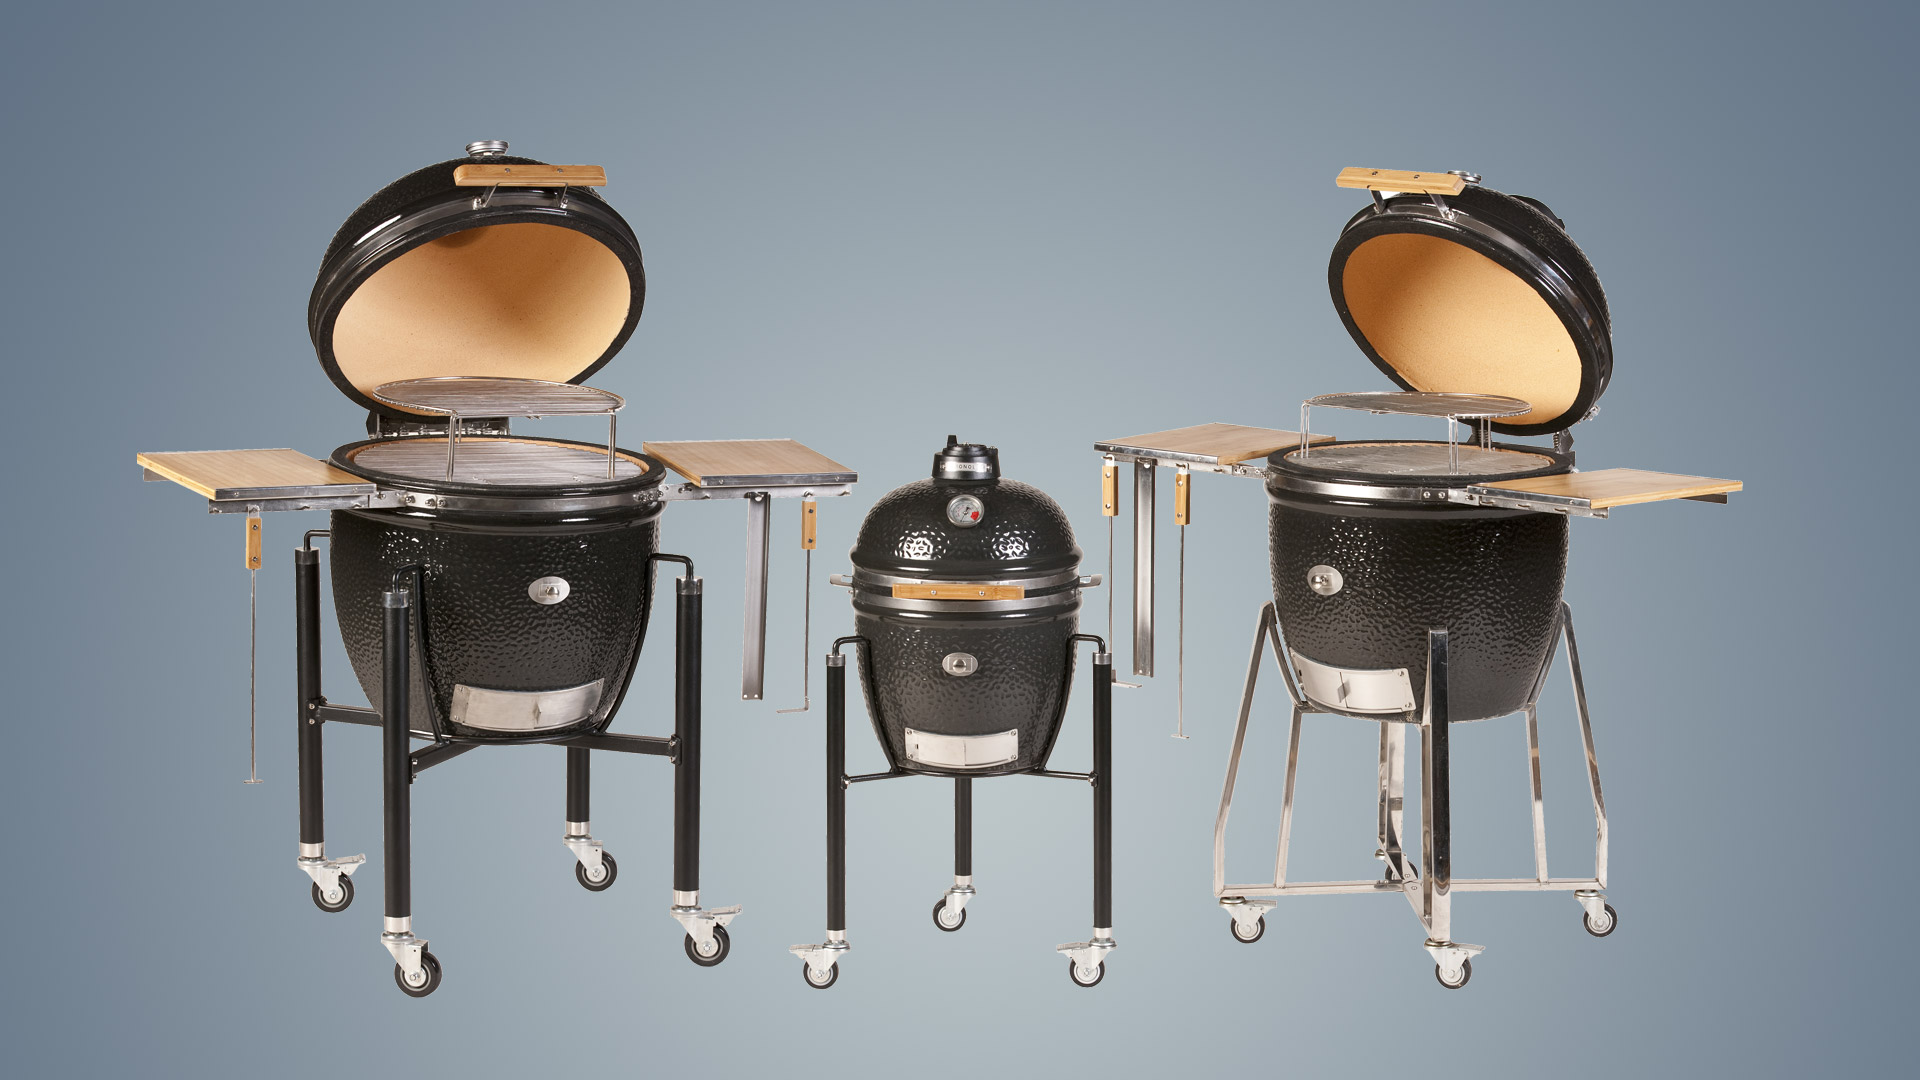 Bbq Sale Uk Part - 22: Monolith Kamado Barbecue Range Of Three Sizes